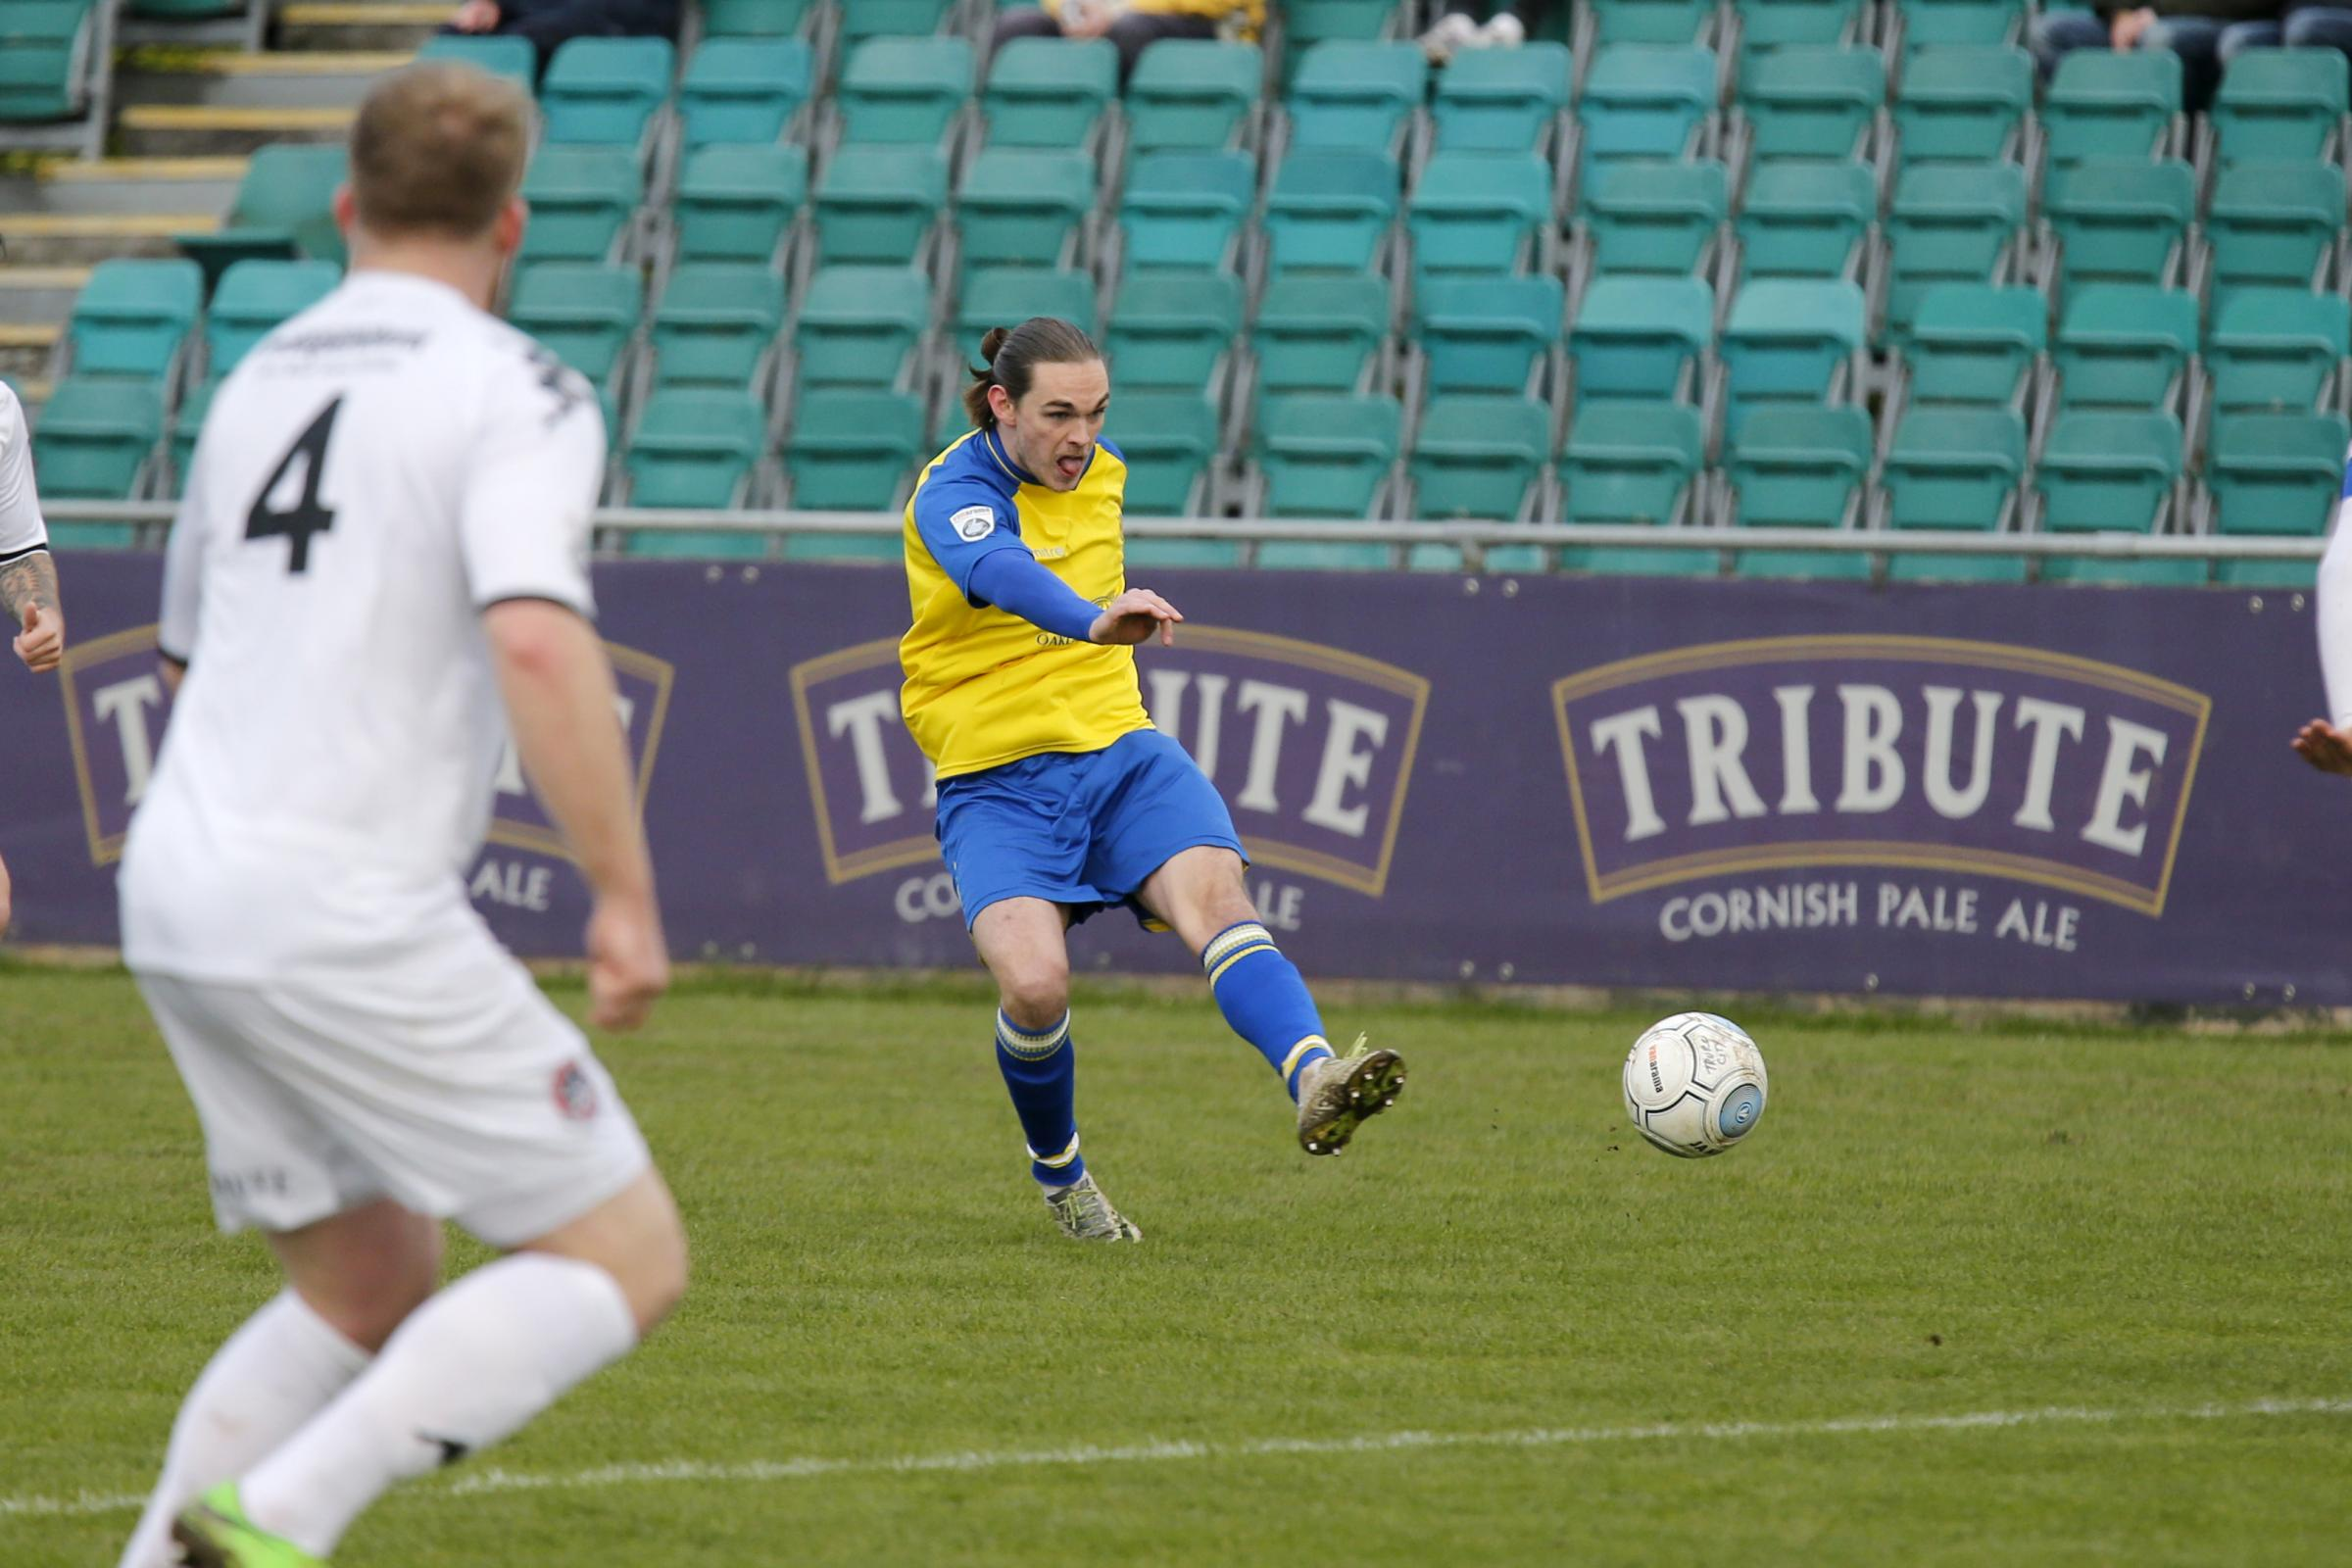 Tom Bender is one of two St Albans City players to have committed his future to St Albans City. Picture: Action Images